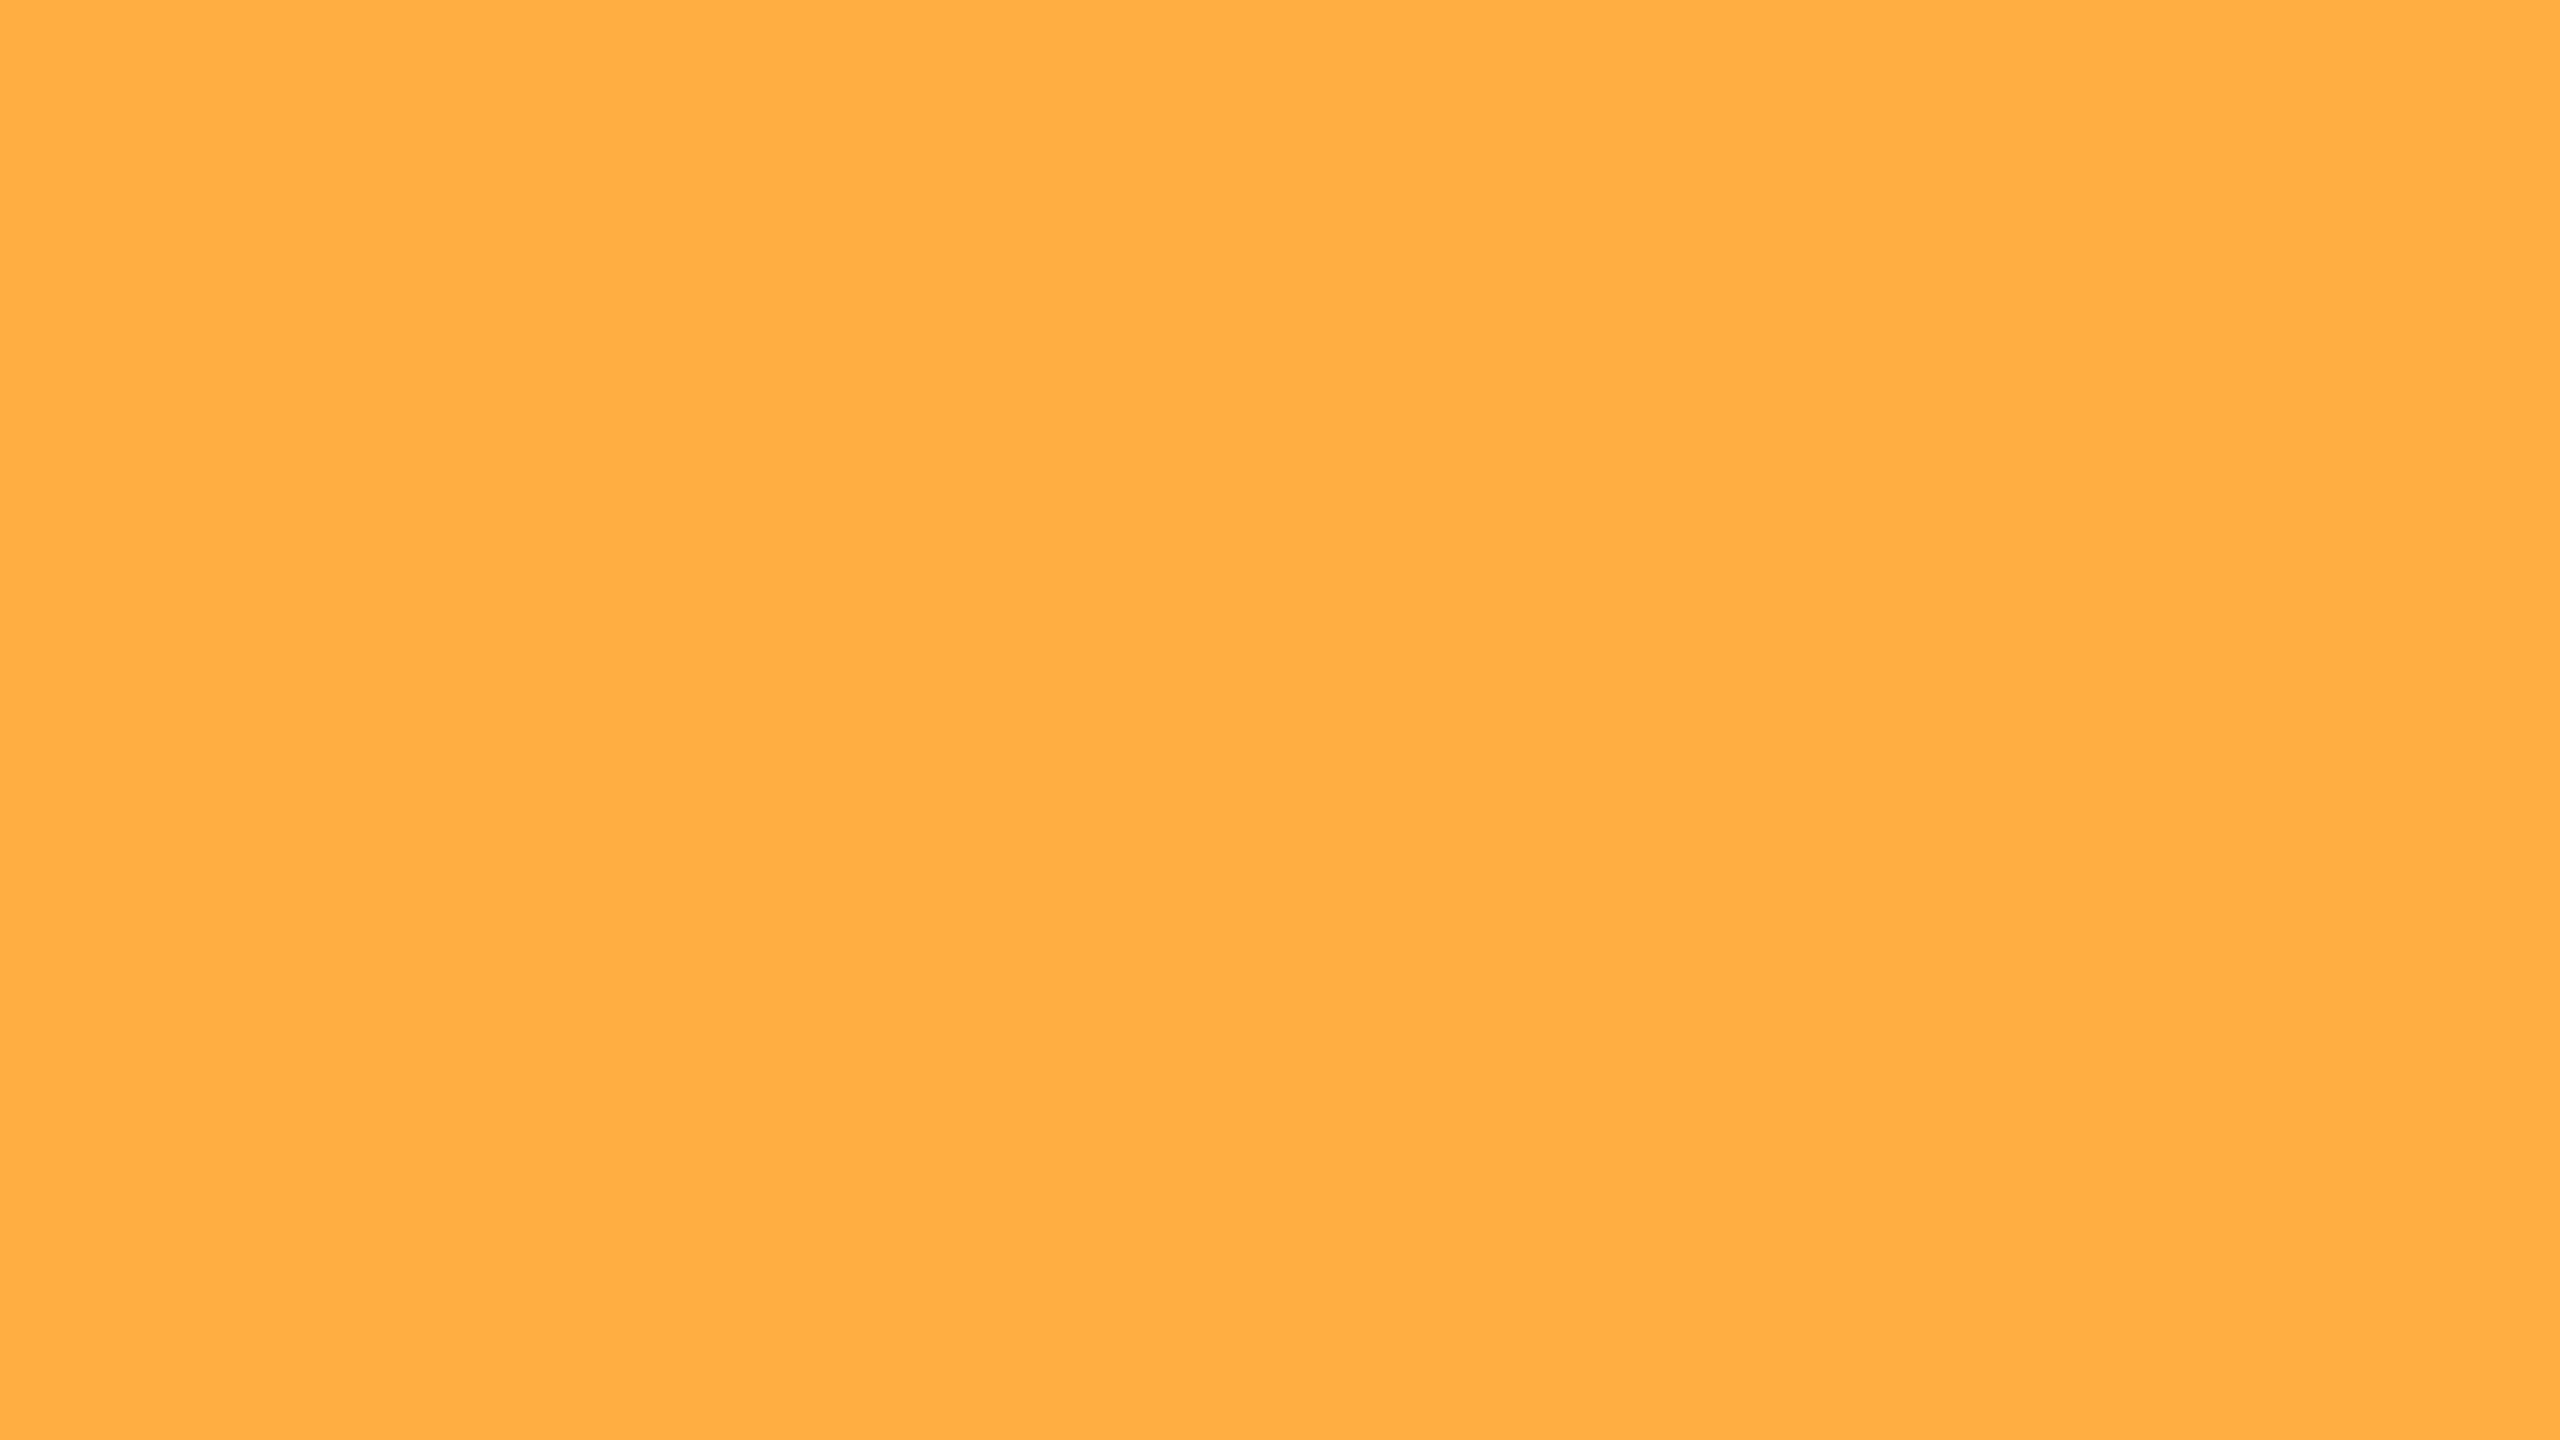 2560x1440 Yellow Orange Solid Color Background